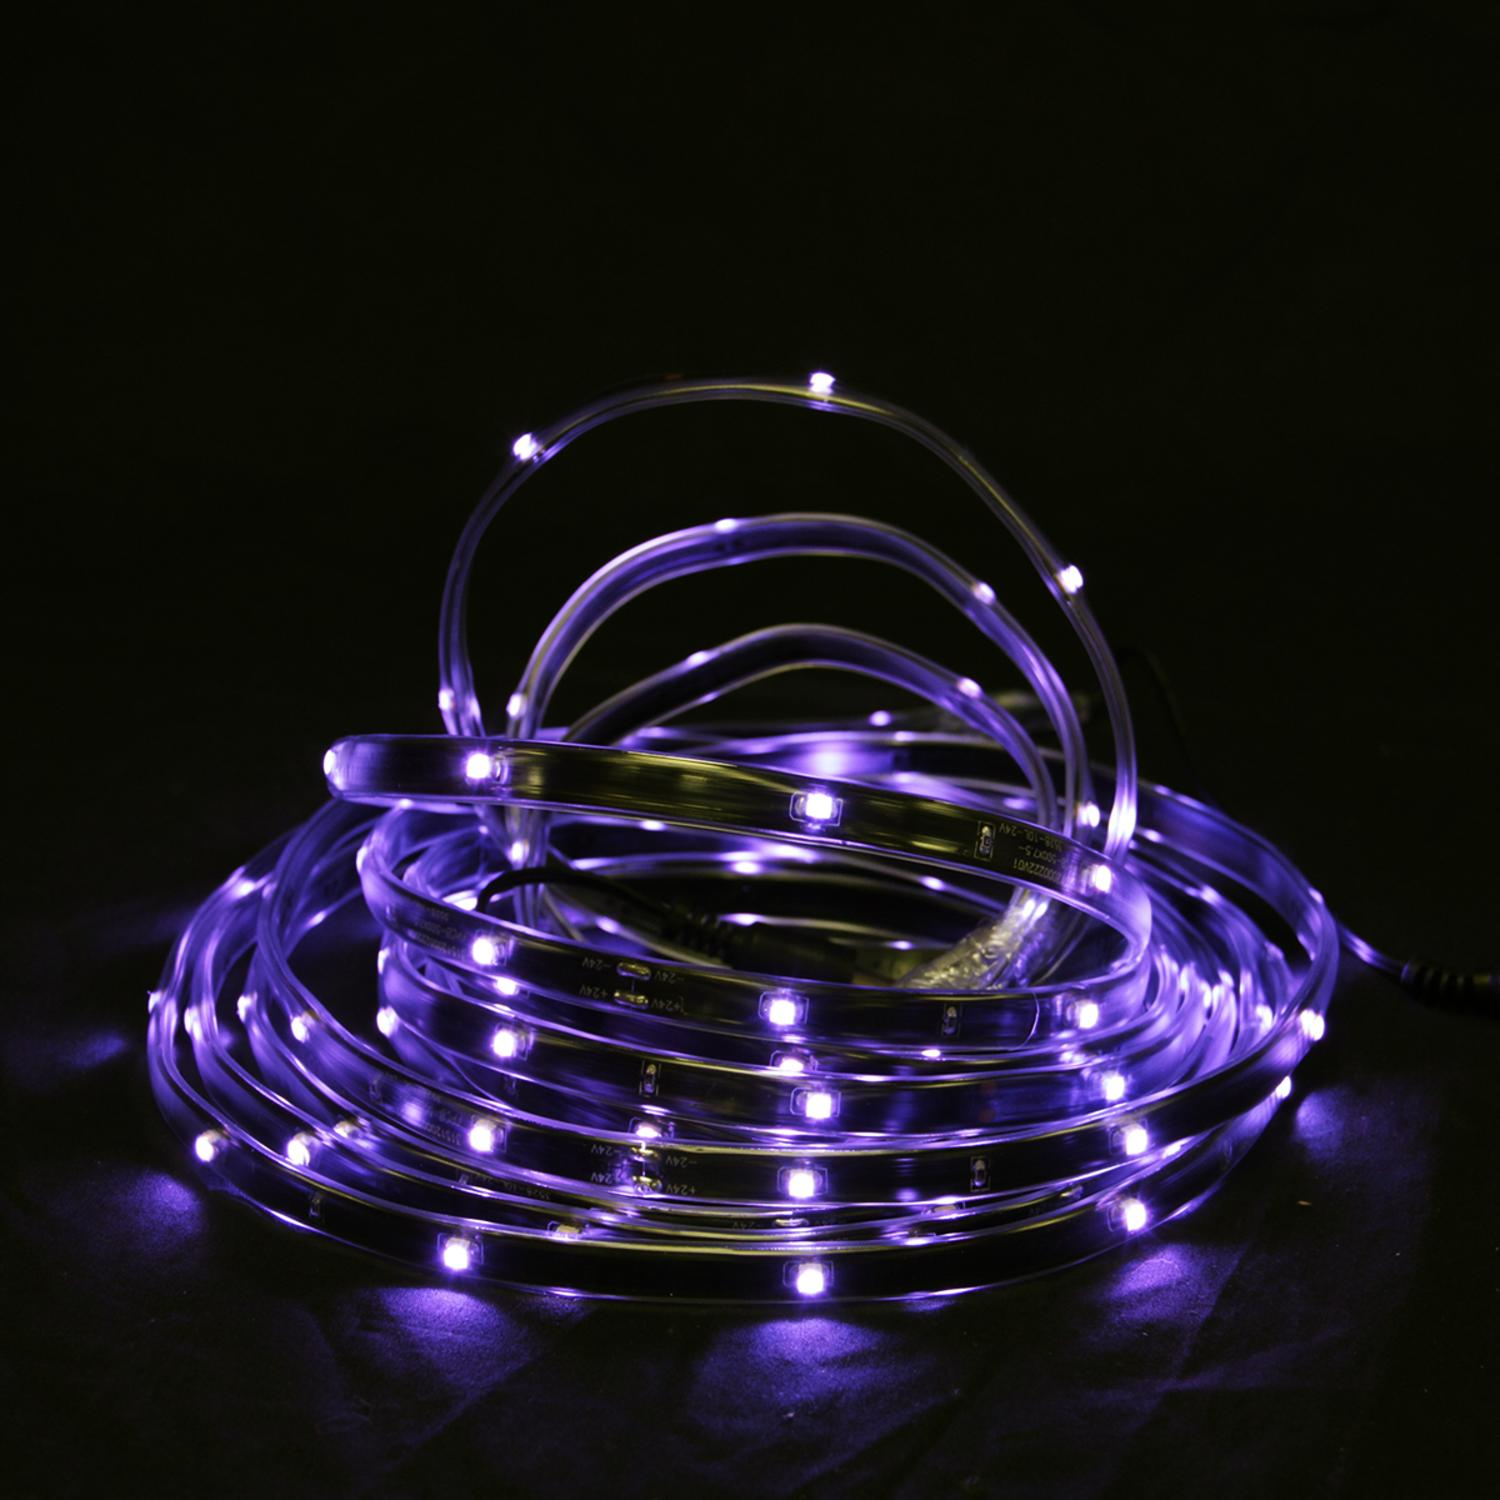 18' Purple LED Indoor/Outdoor Christmas Linear Tape Lighting - Black Finish